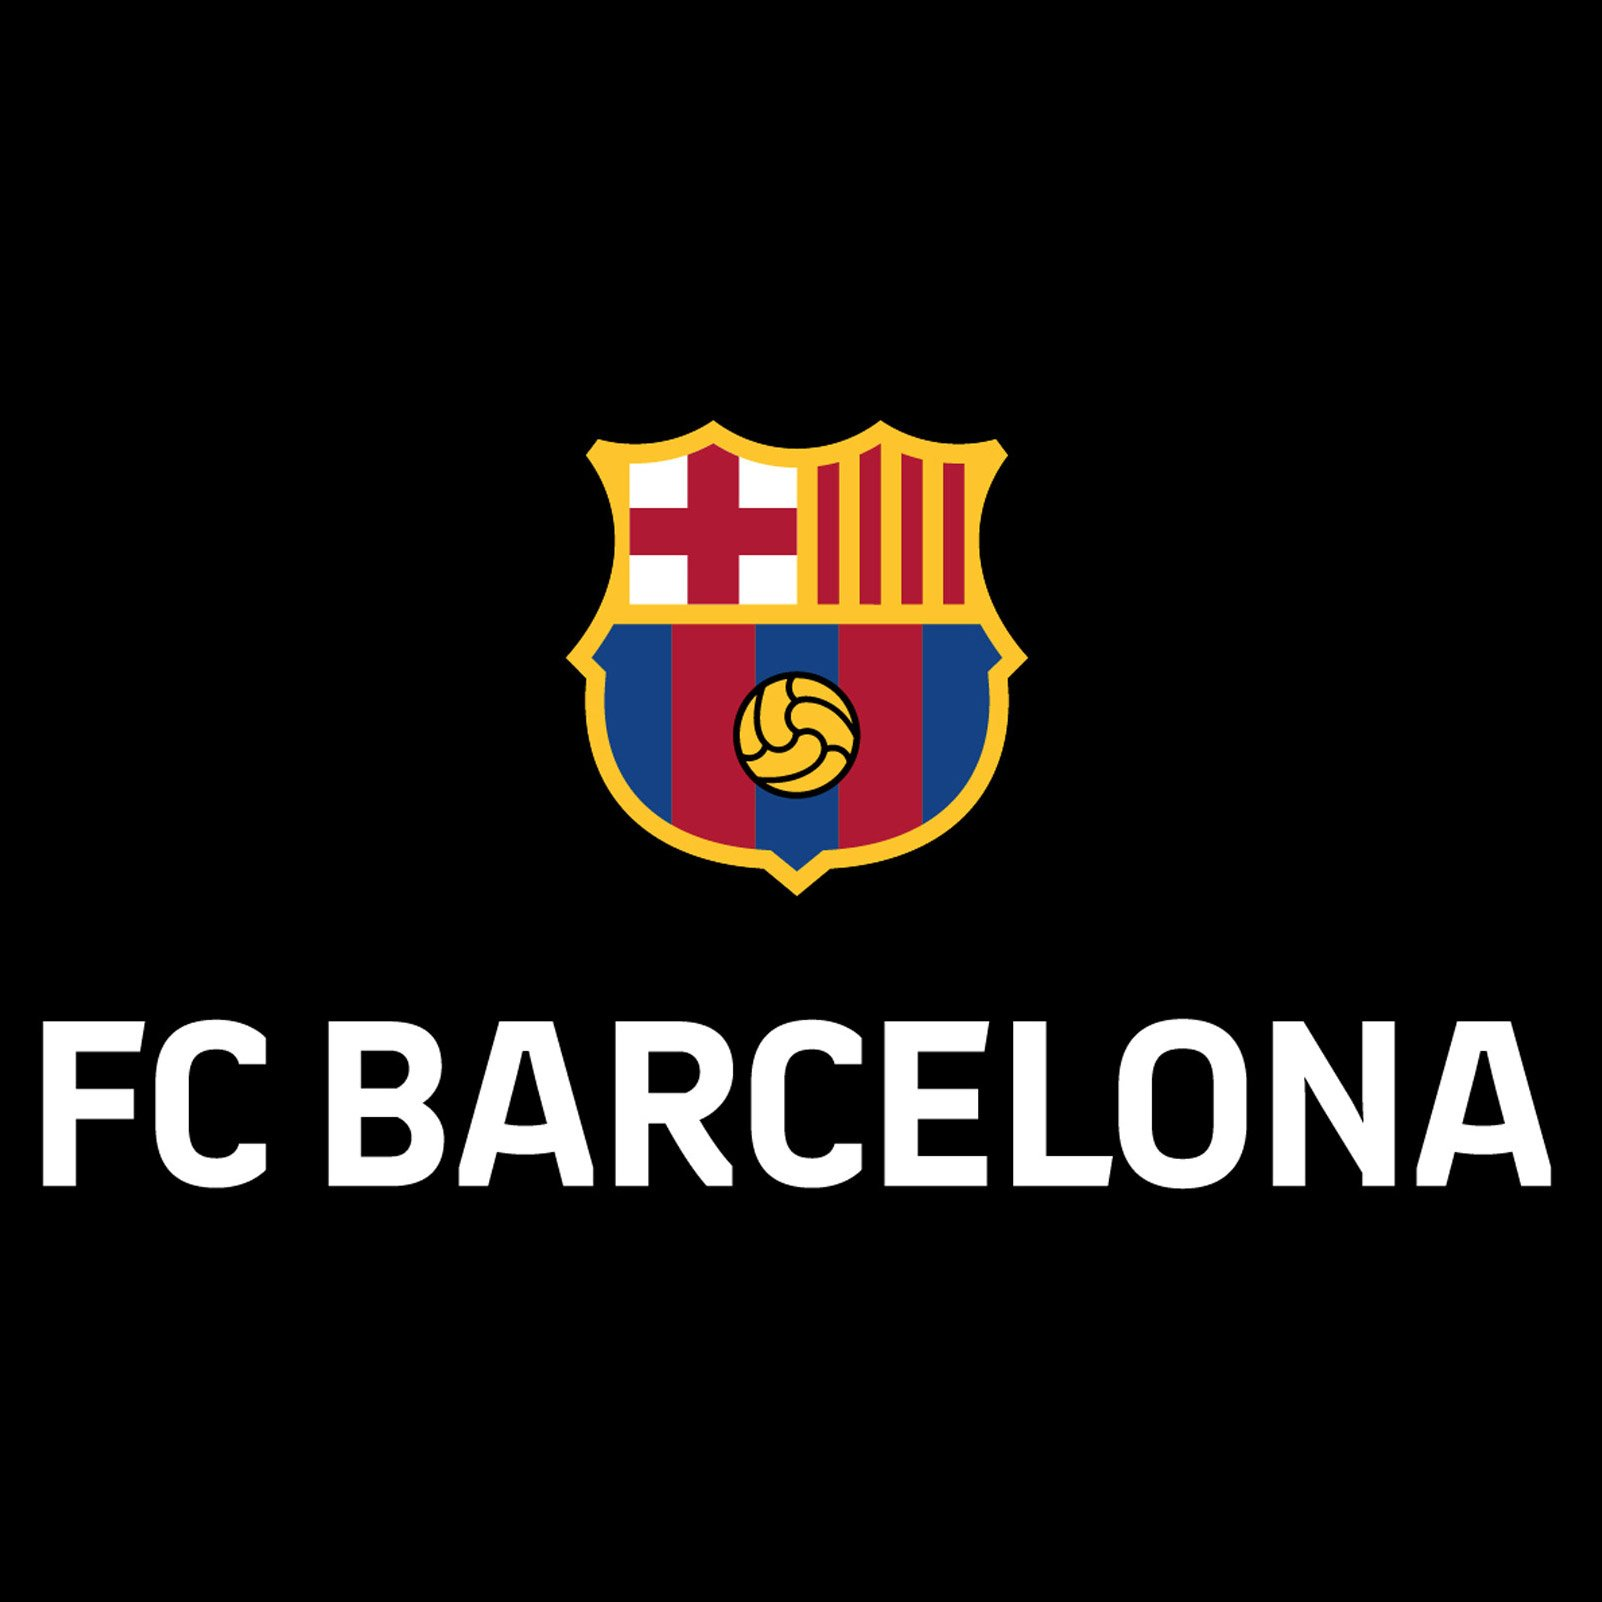 Barcelona Simplifies Crest To Promote The Team In The World Of Digital Media